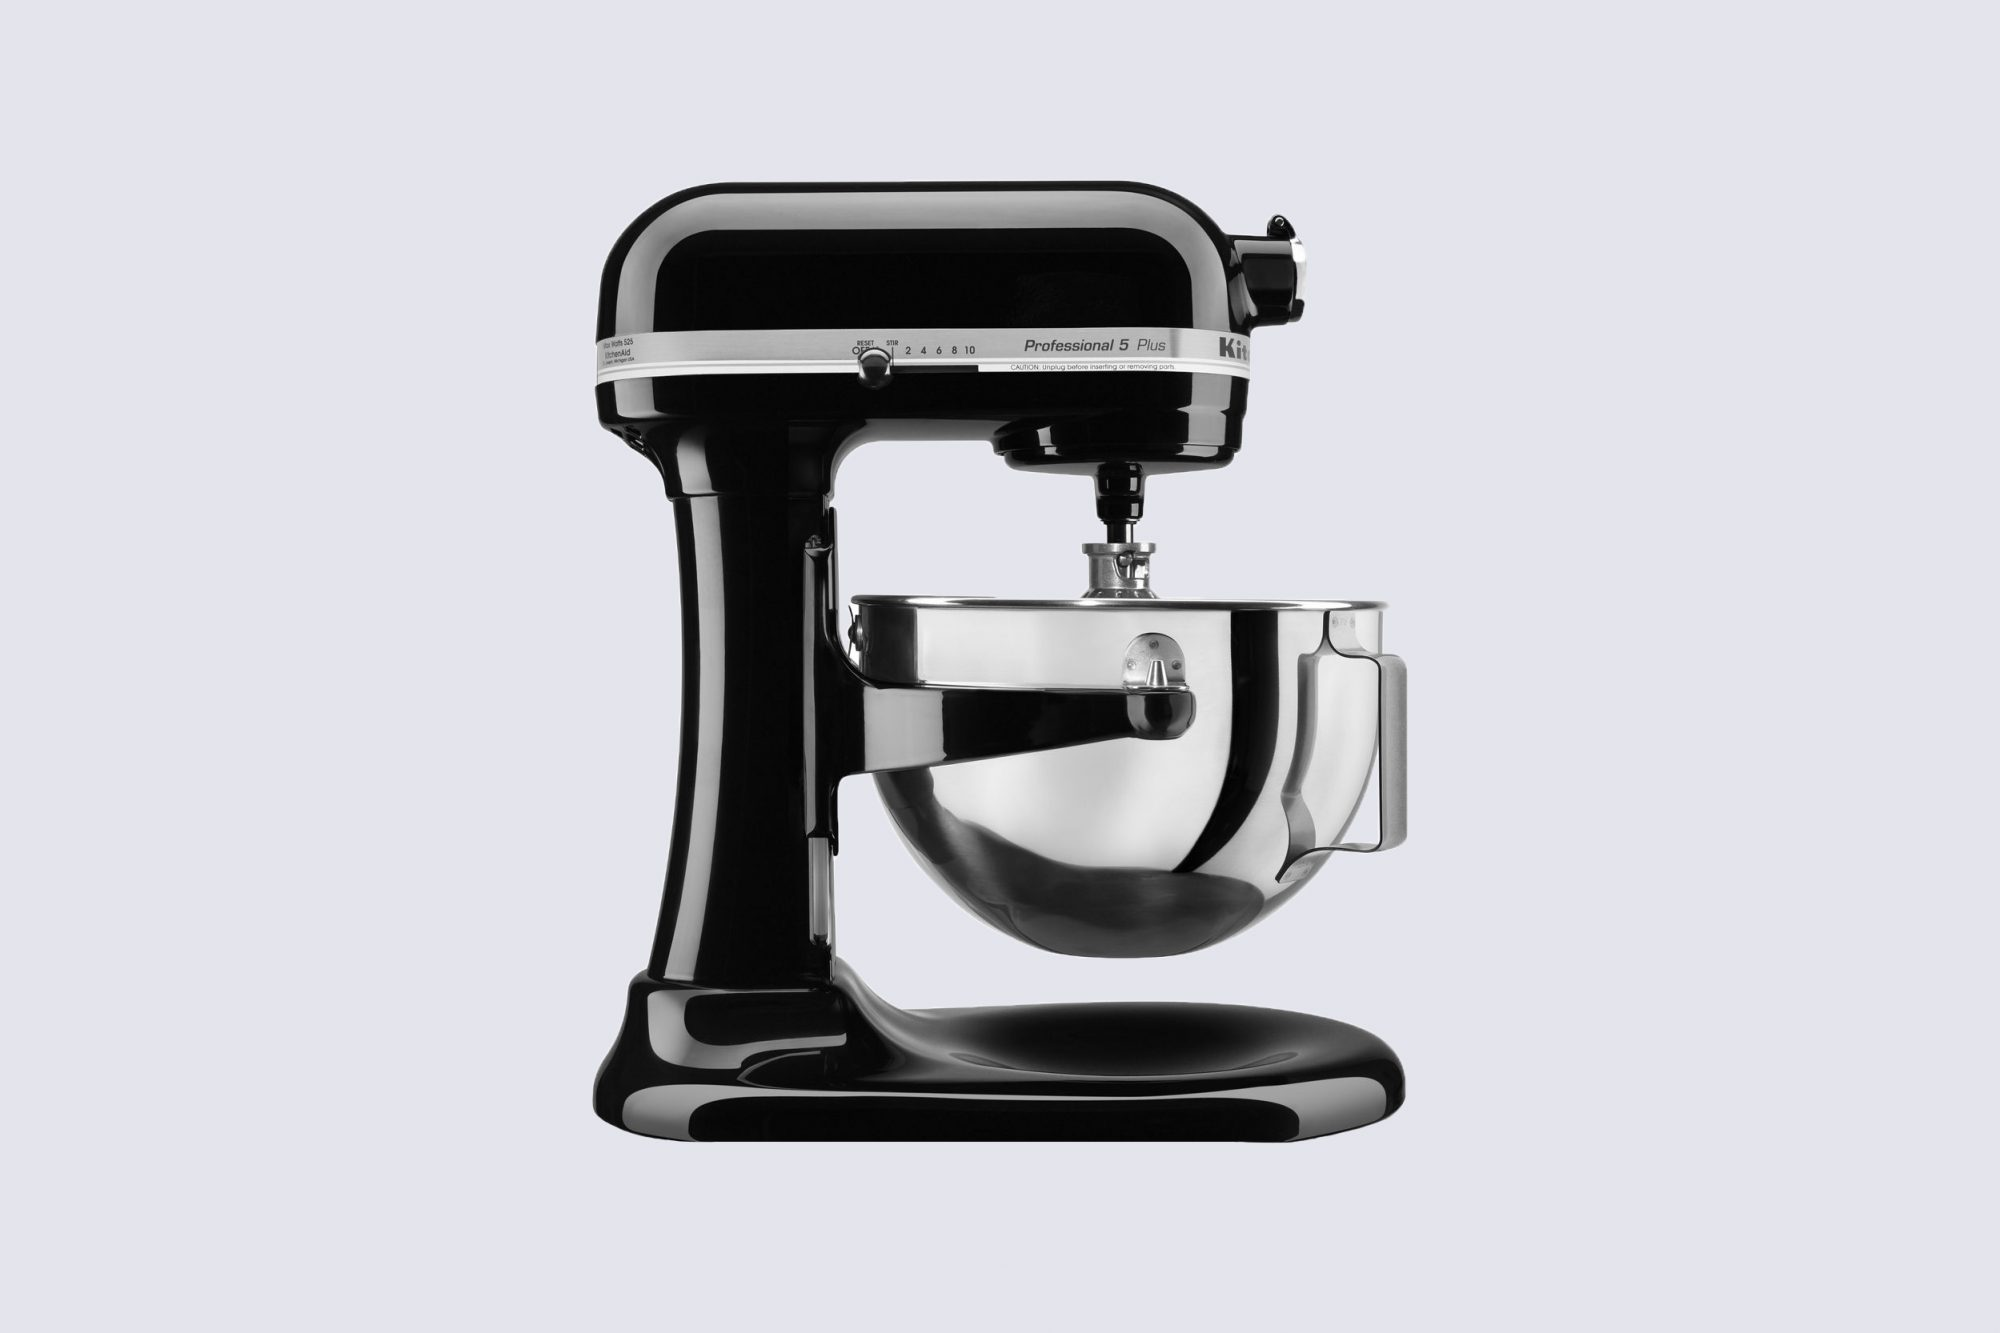 Kitchenaid Has Announced Their Black Friday Deals And You Don T Want To Miss Out Martha Stewart